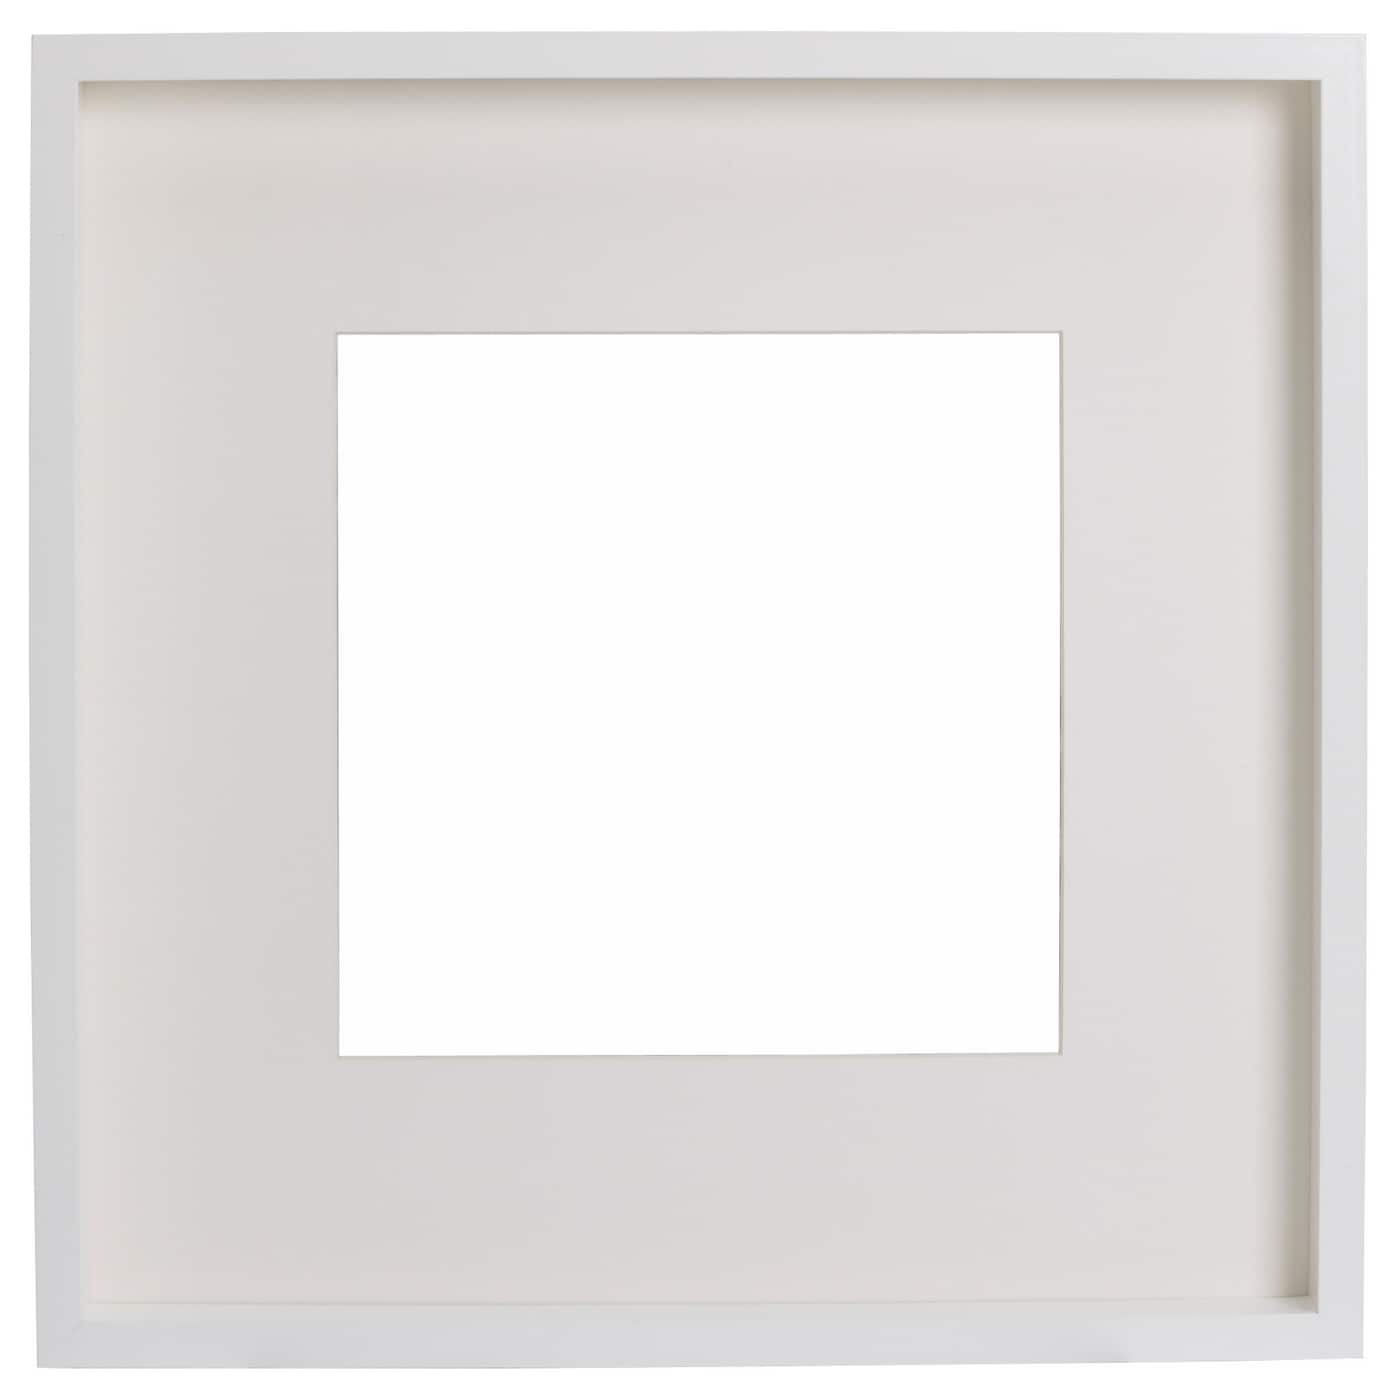 Ribba frame white 50x50 cm ikea for Ikea ribba weiay